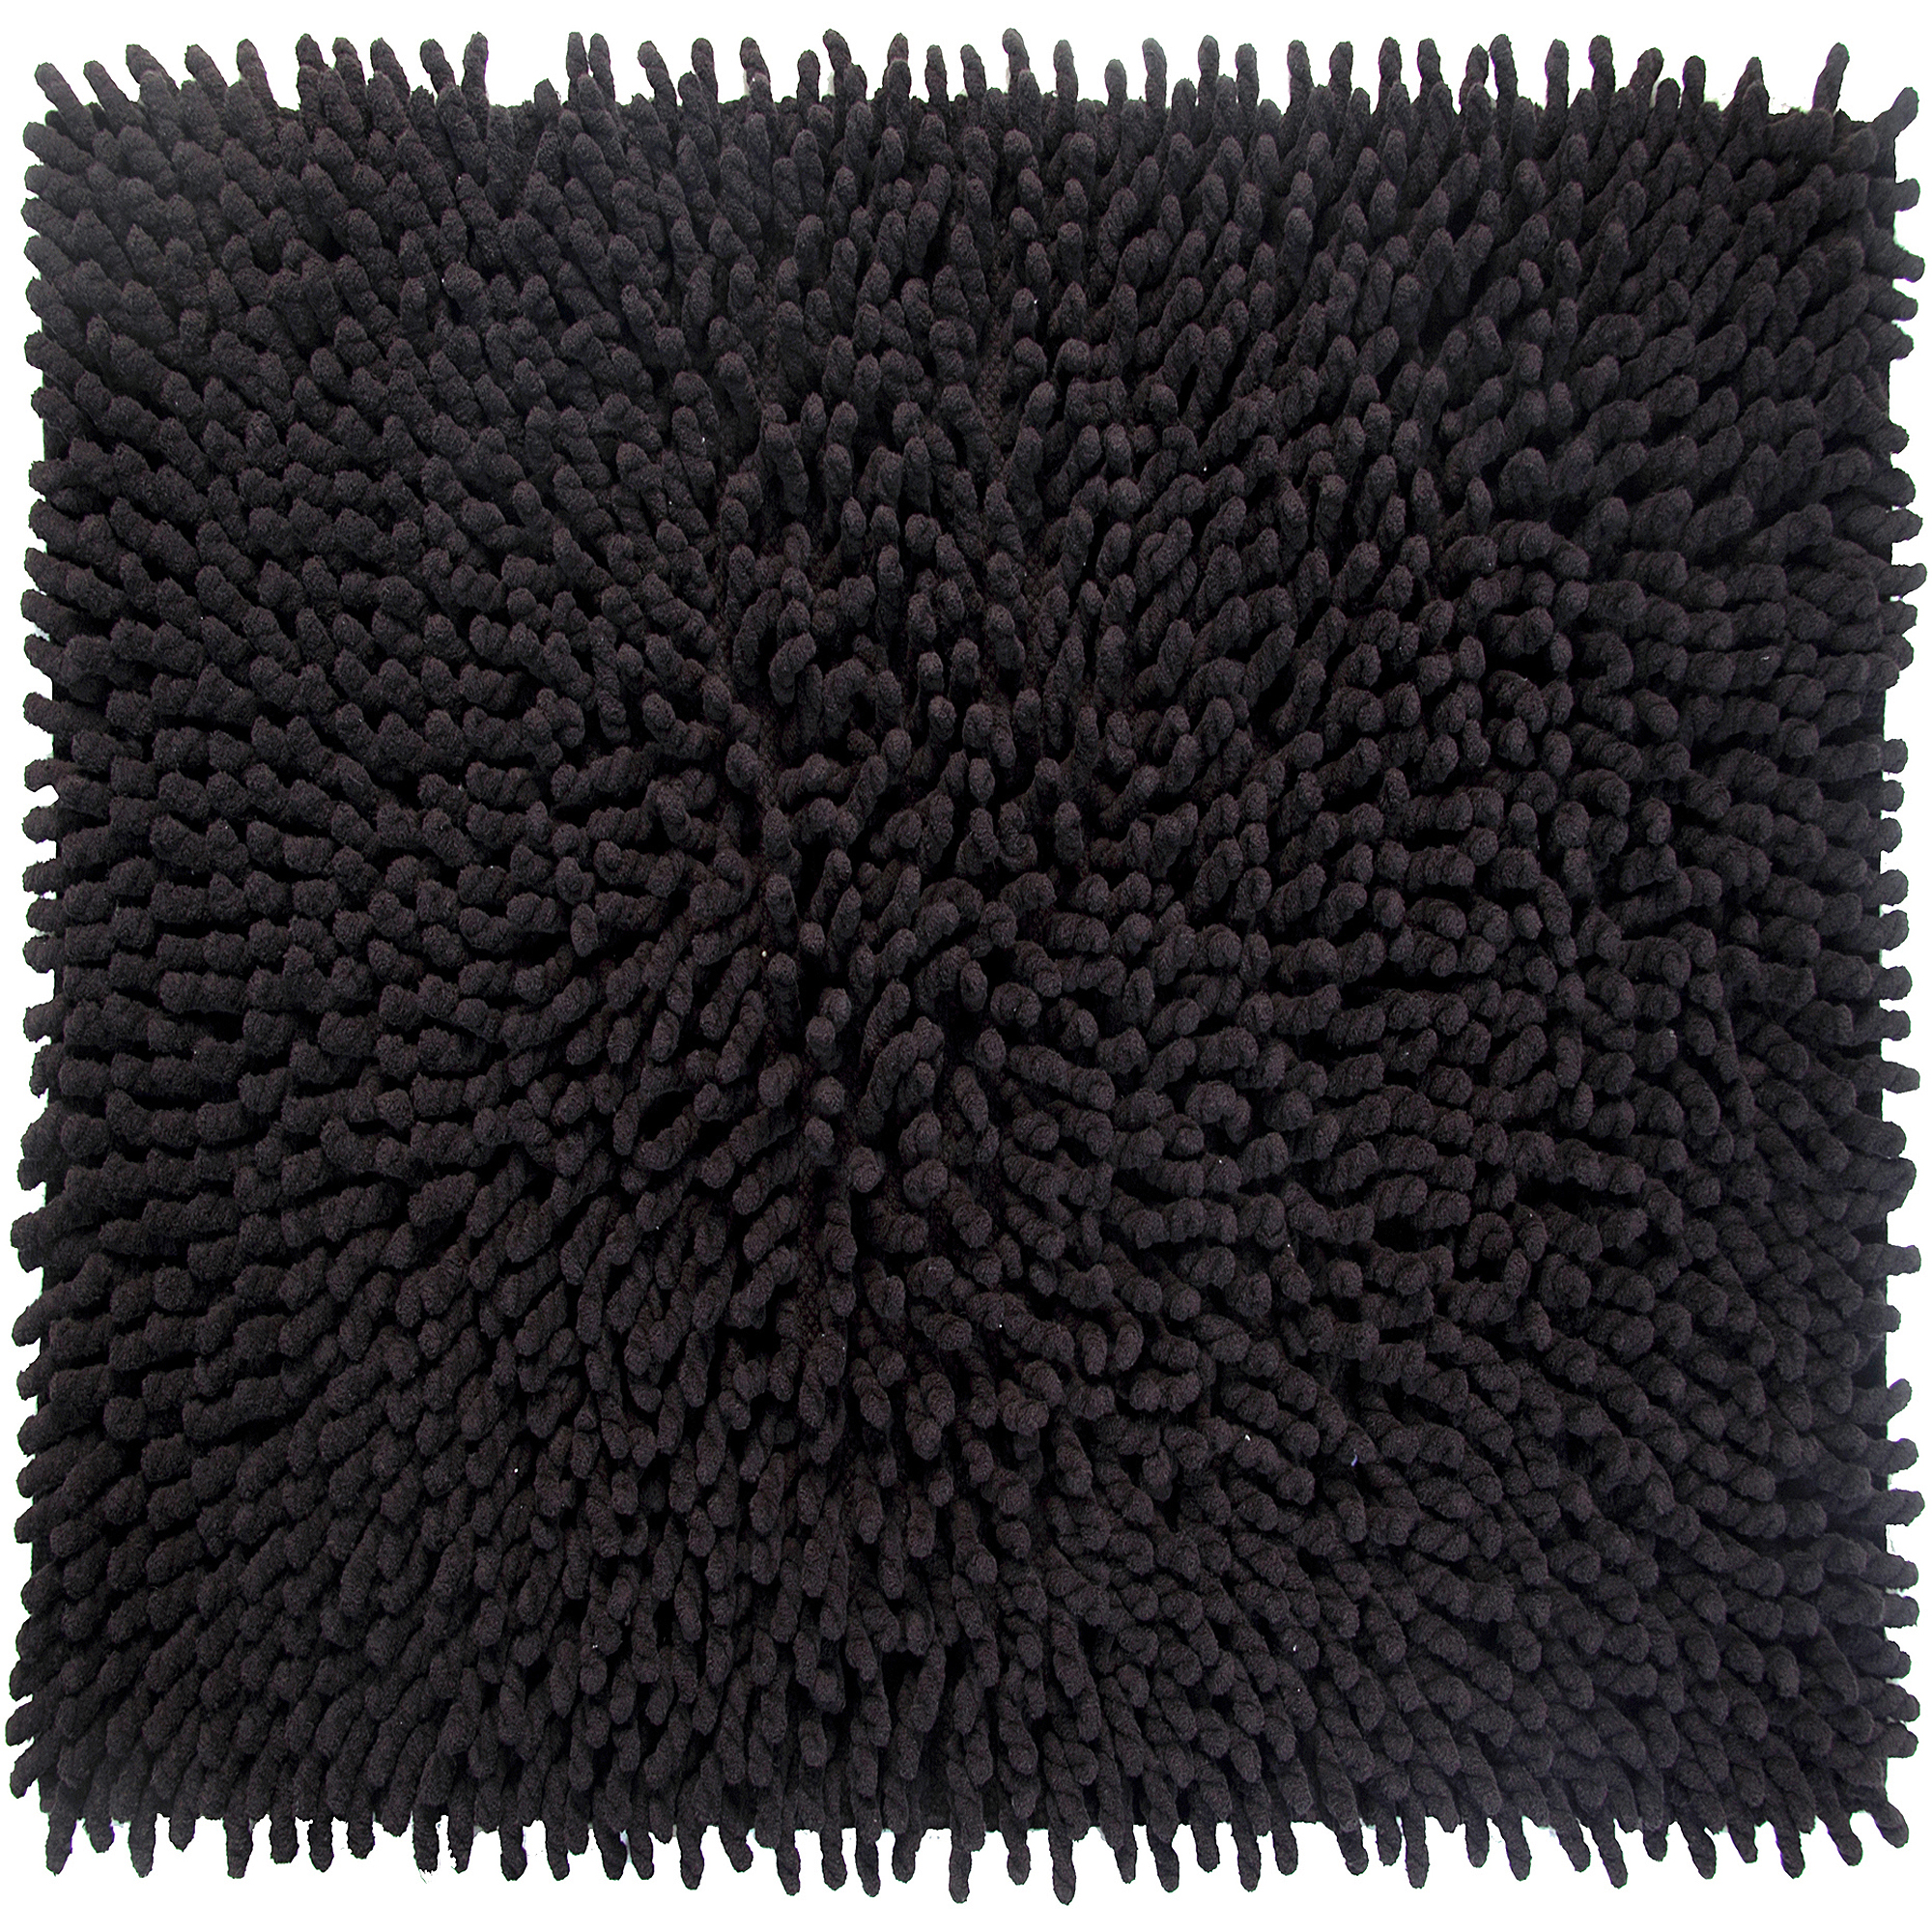 Loopy Chenille Percent Cotton Bath Rug Walmartcom - Black chenille bath rug for bathroom decorating ideas